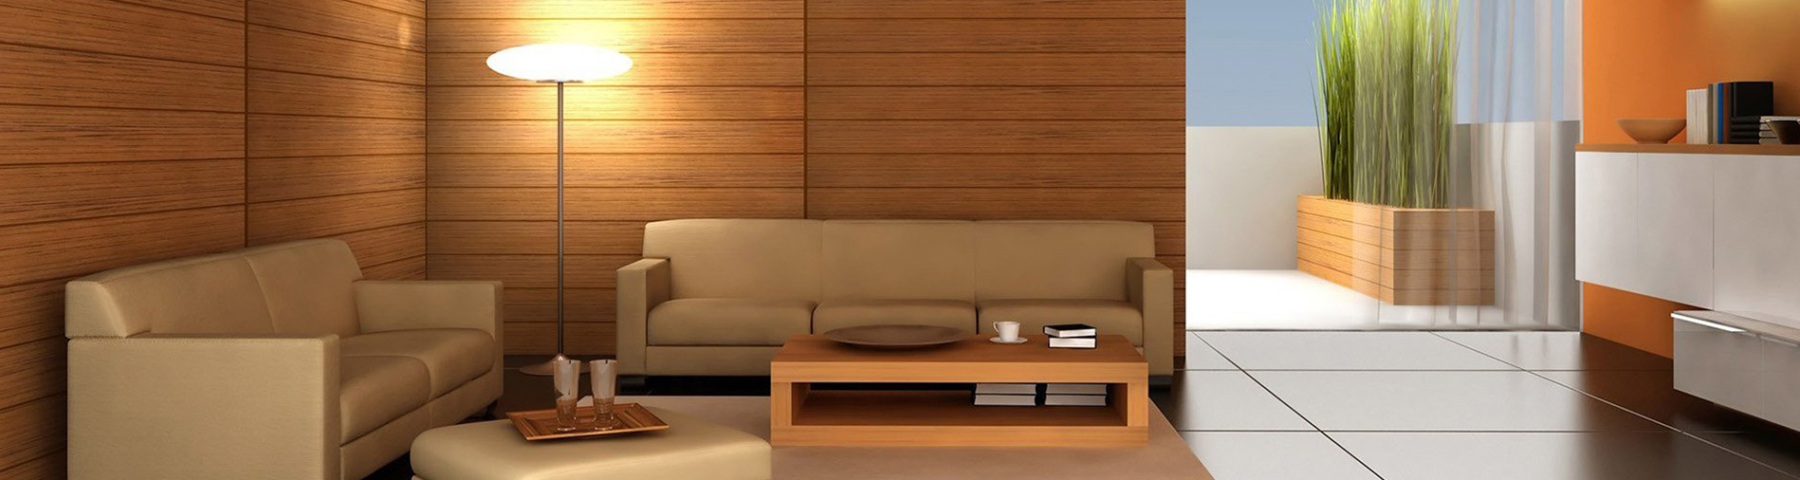 Interior Designers in Chennai | Home Interiors | GMinterior